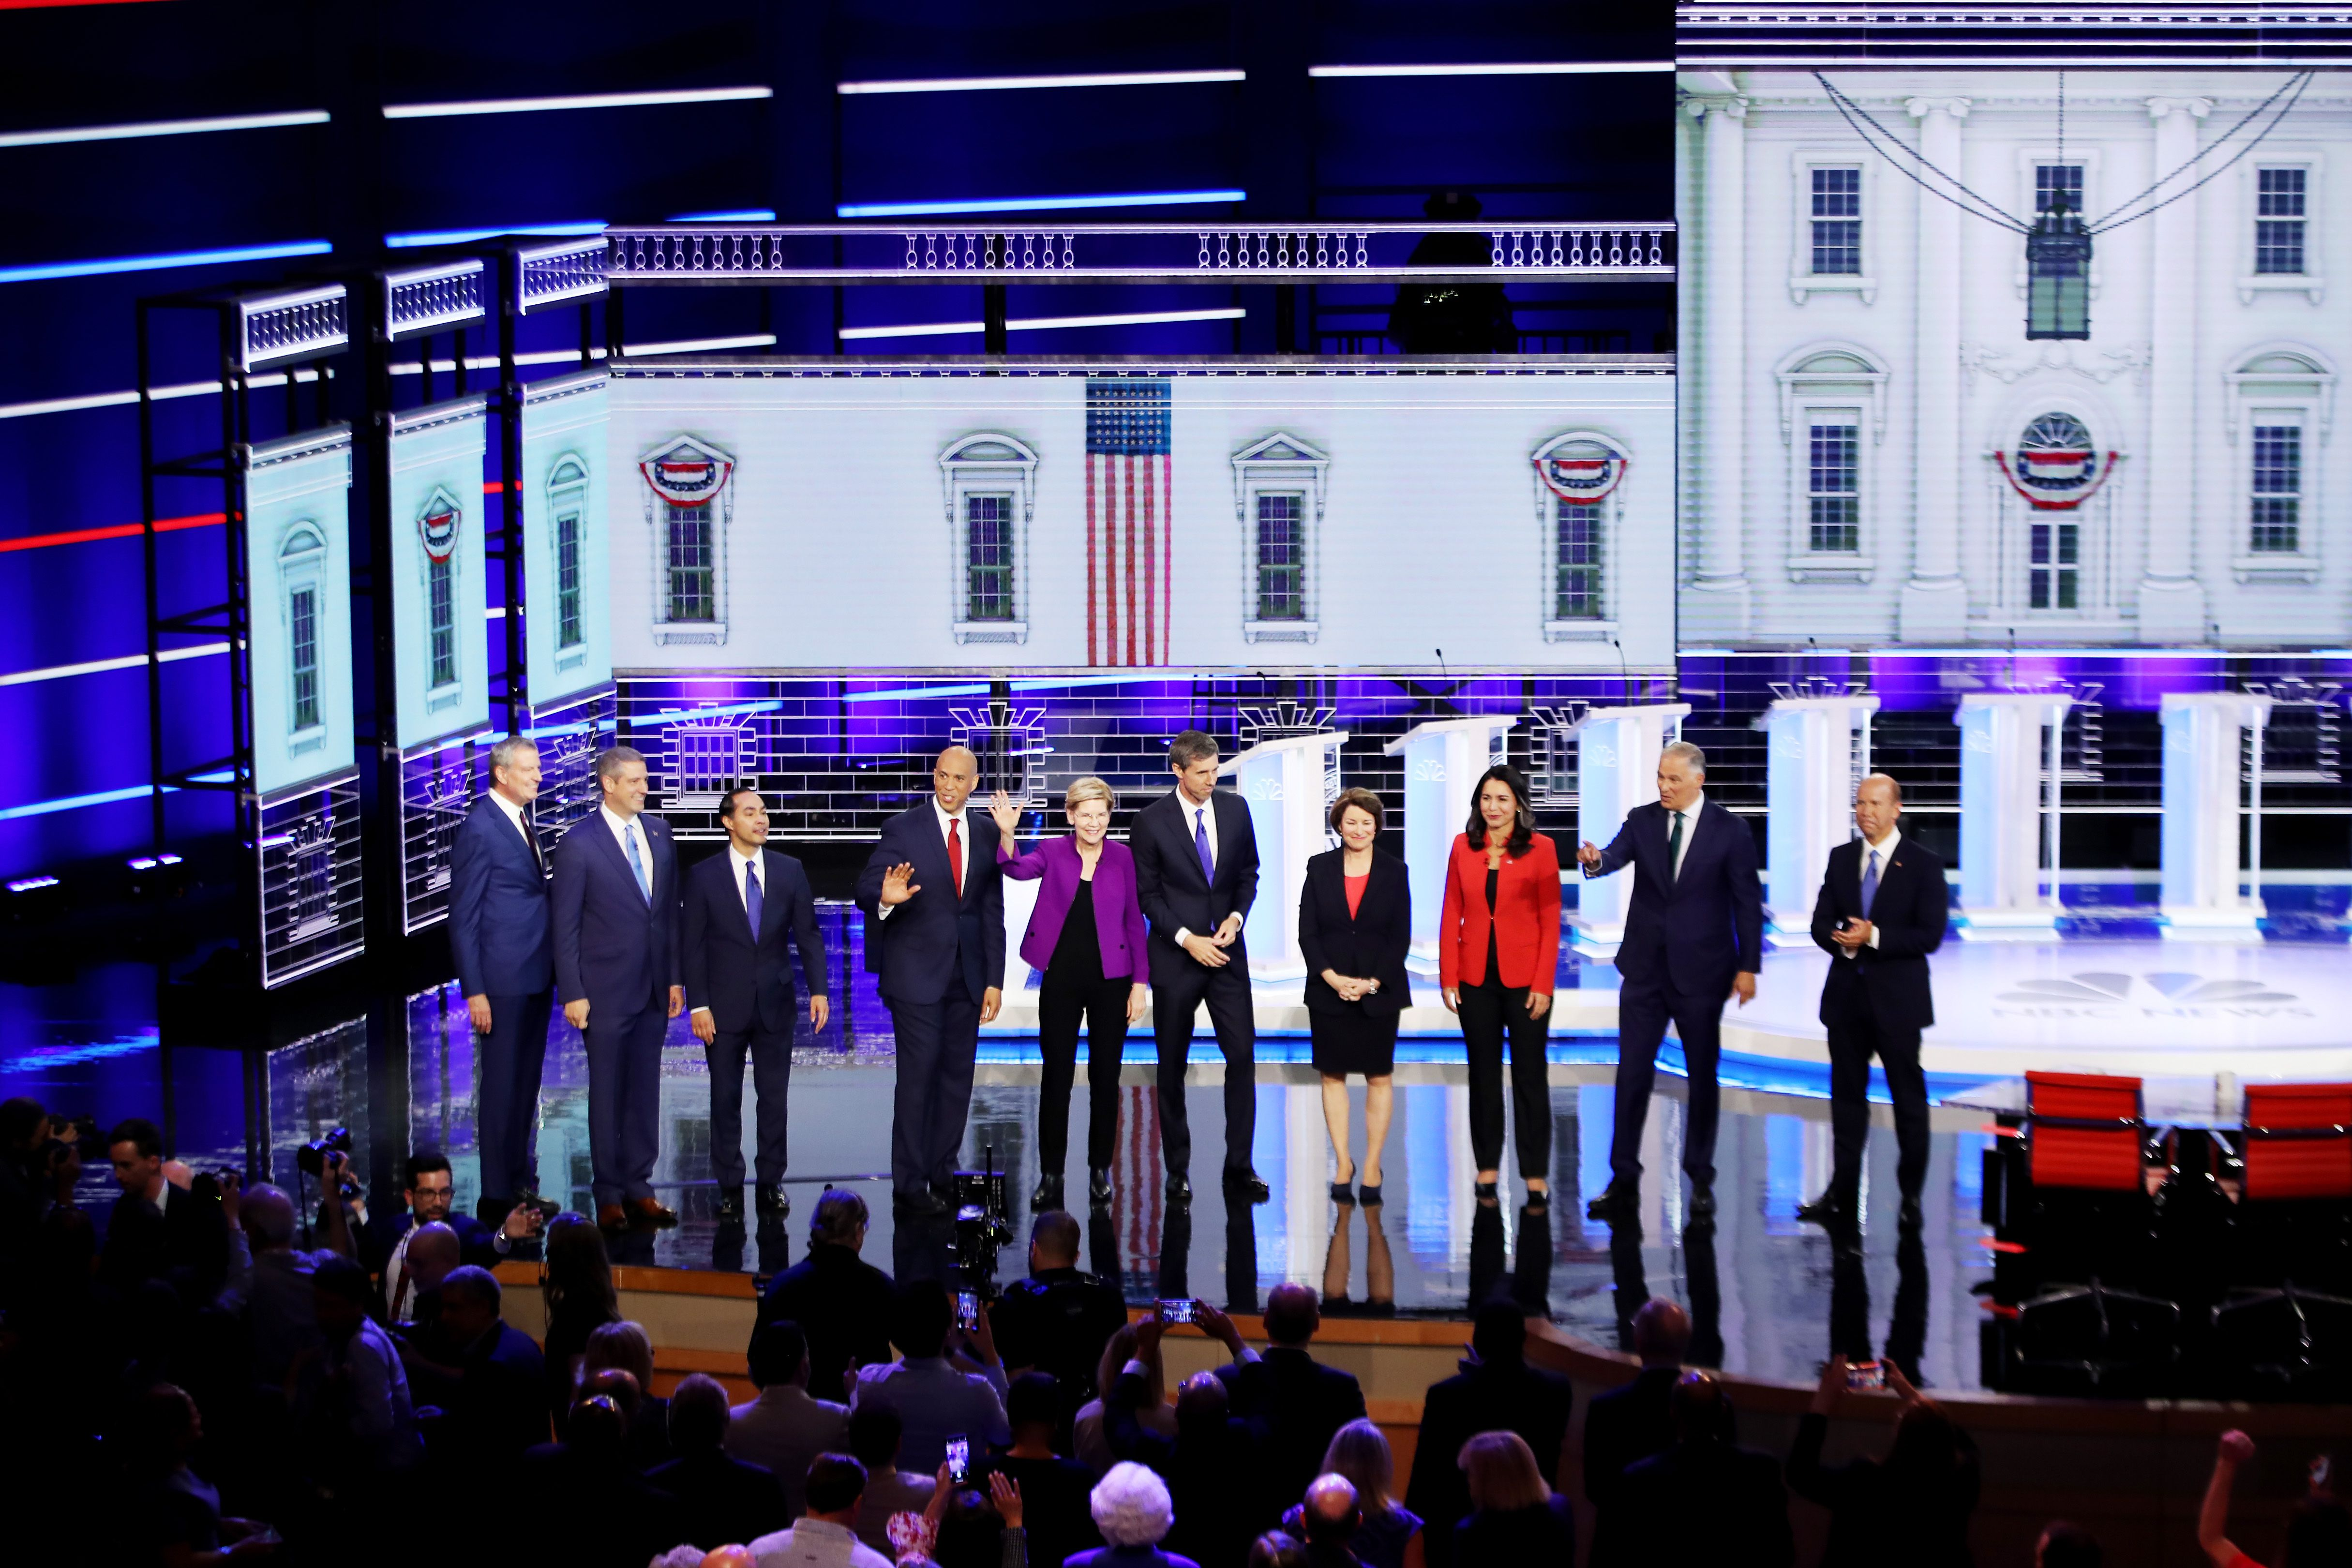 Tracking the speaking time of the Democratic presidential candidates